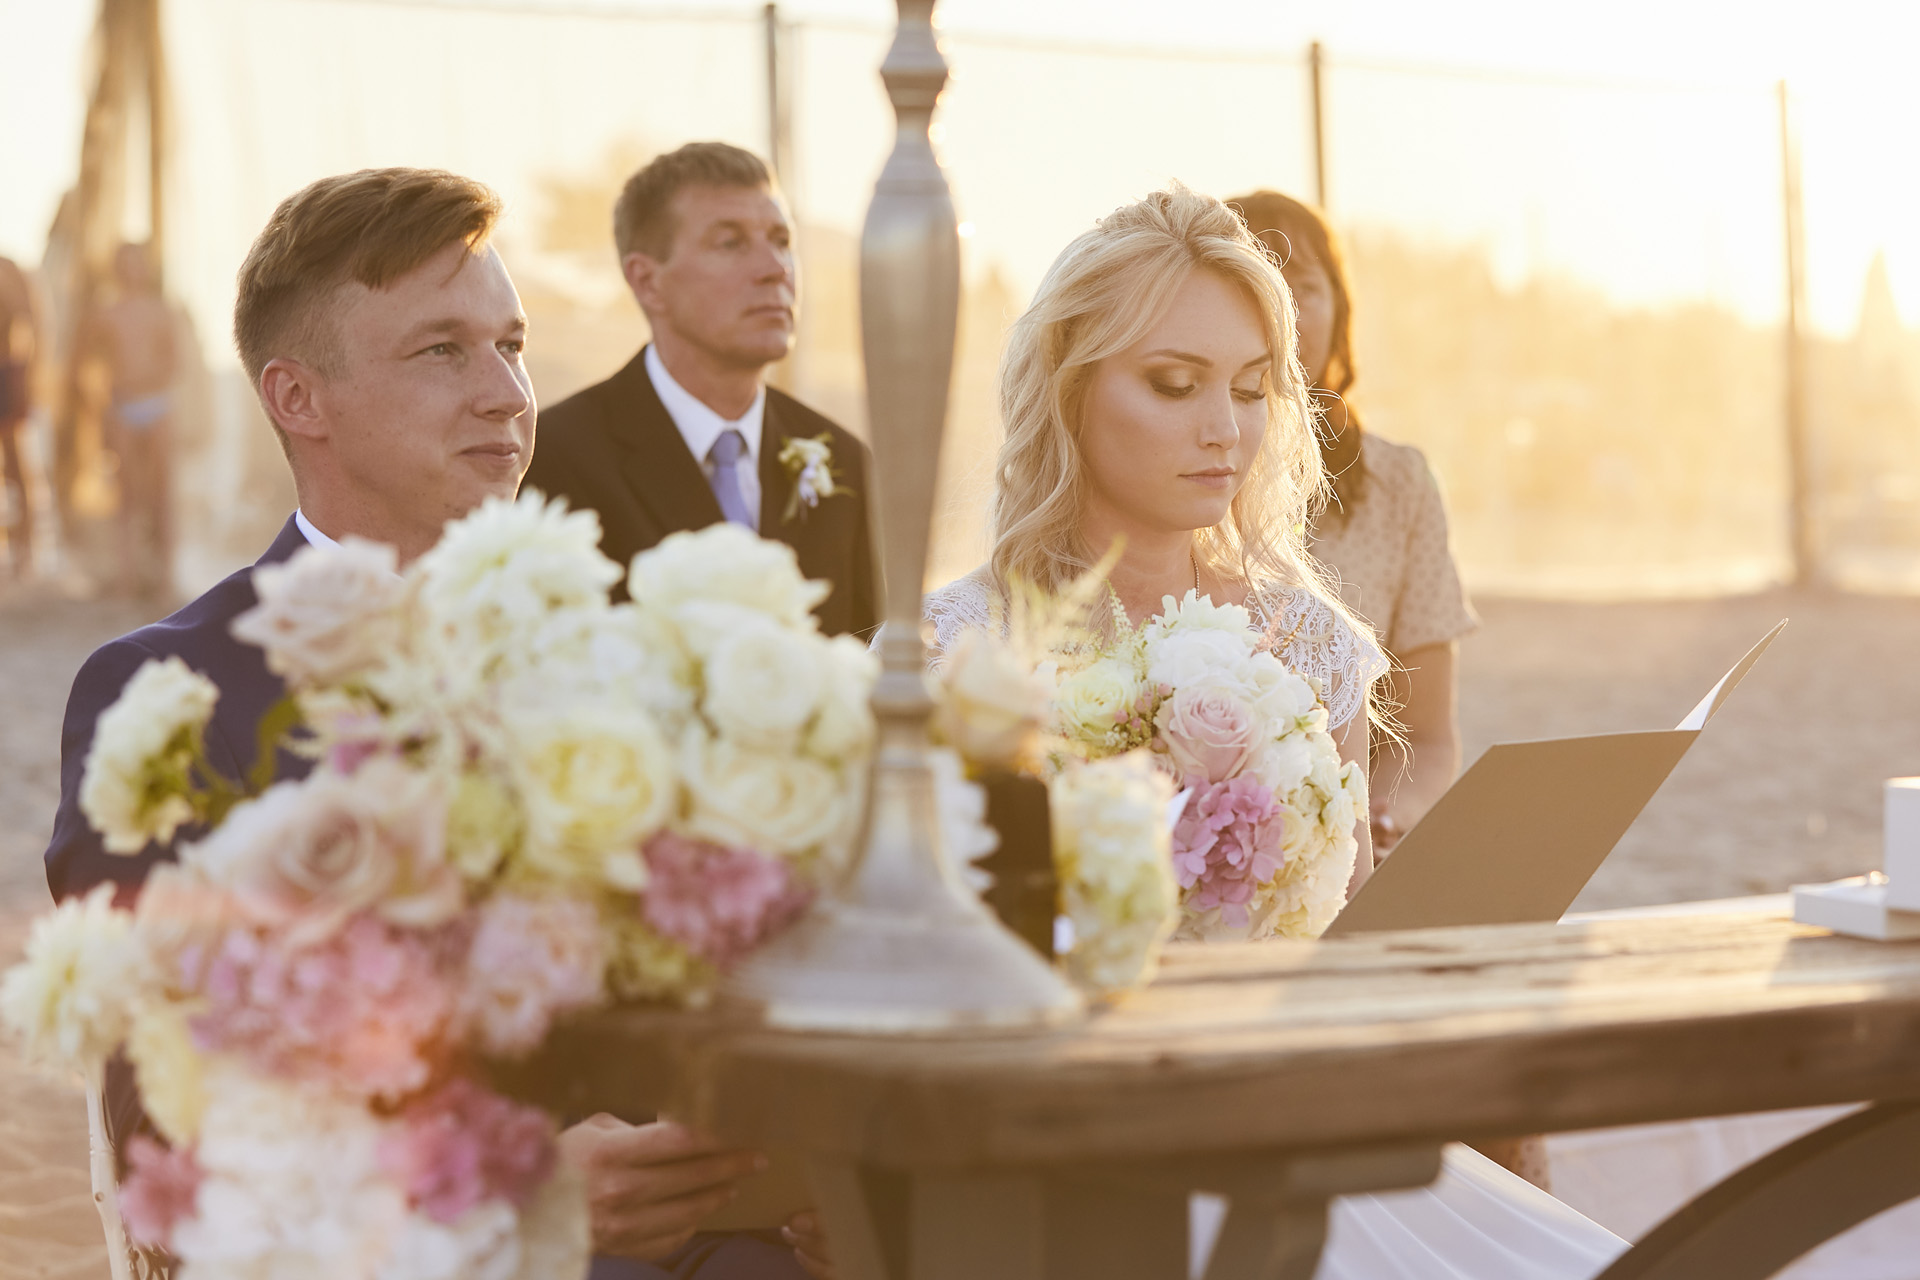 A day in the life of a wedding planner